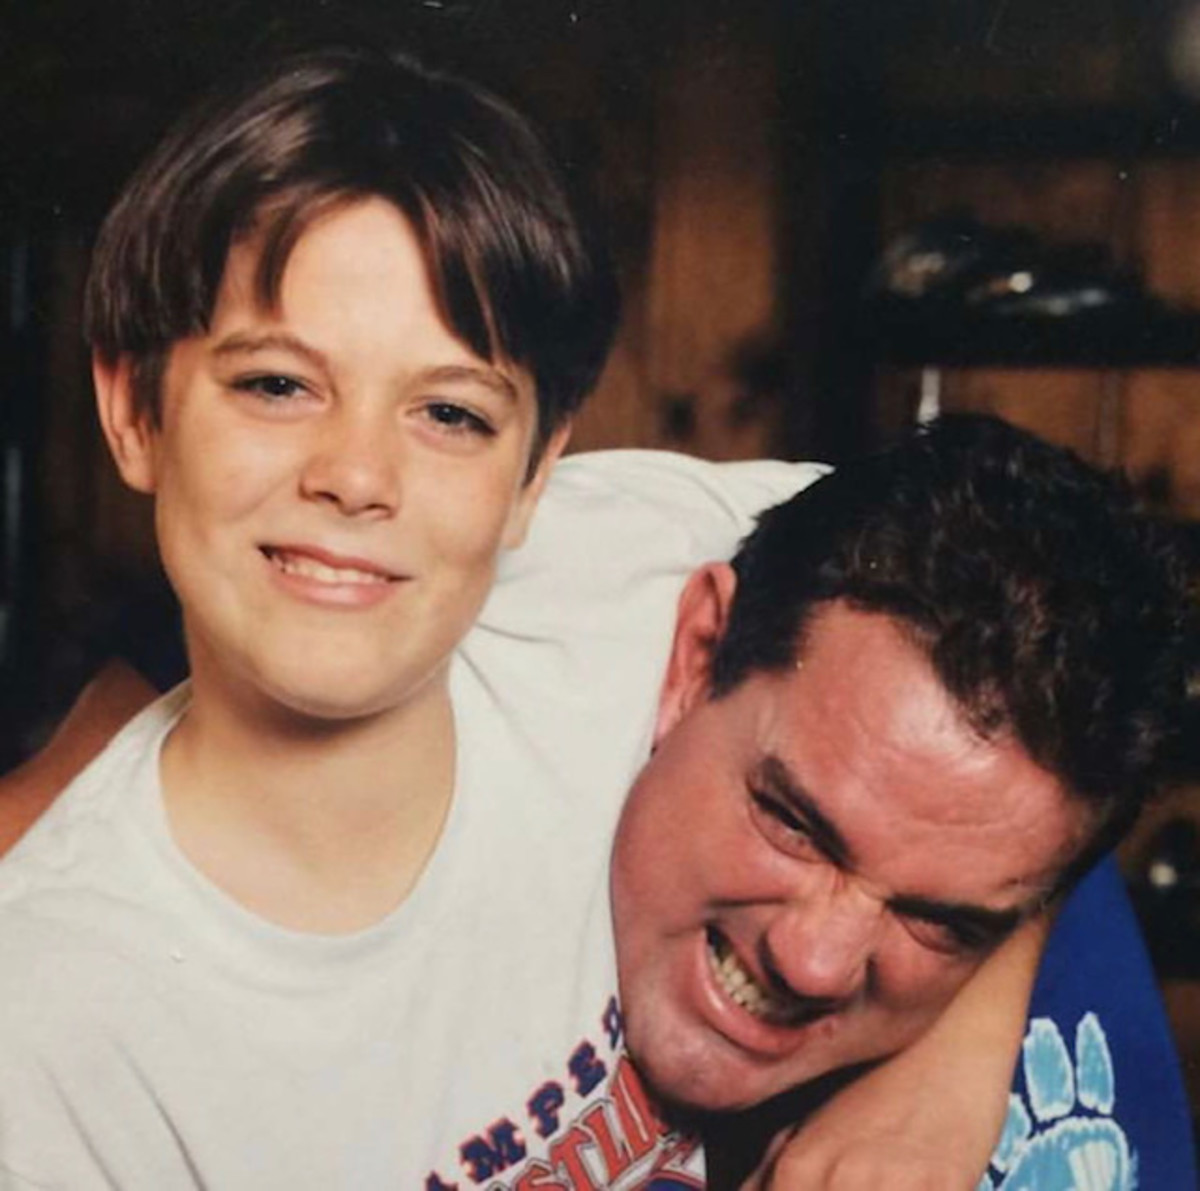 Davey Boy Smith and his son, Harry